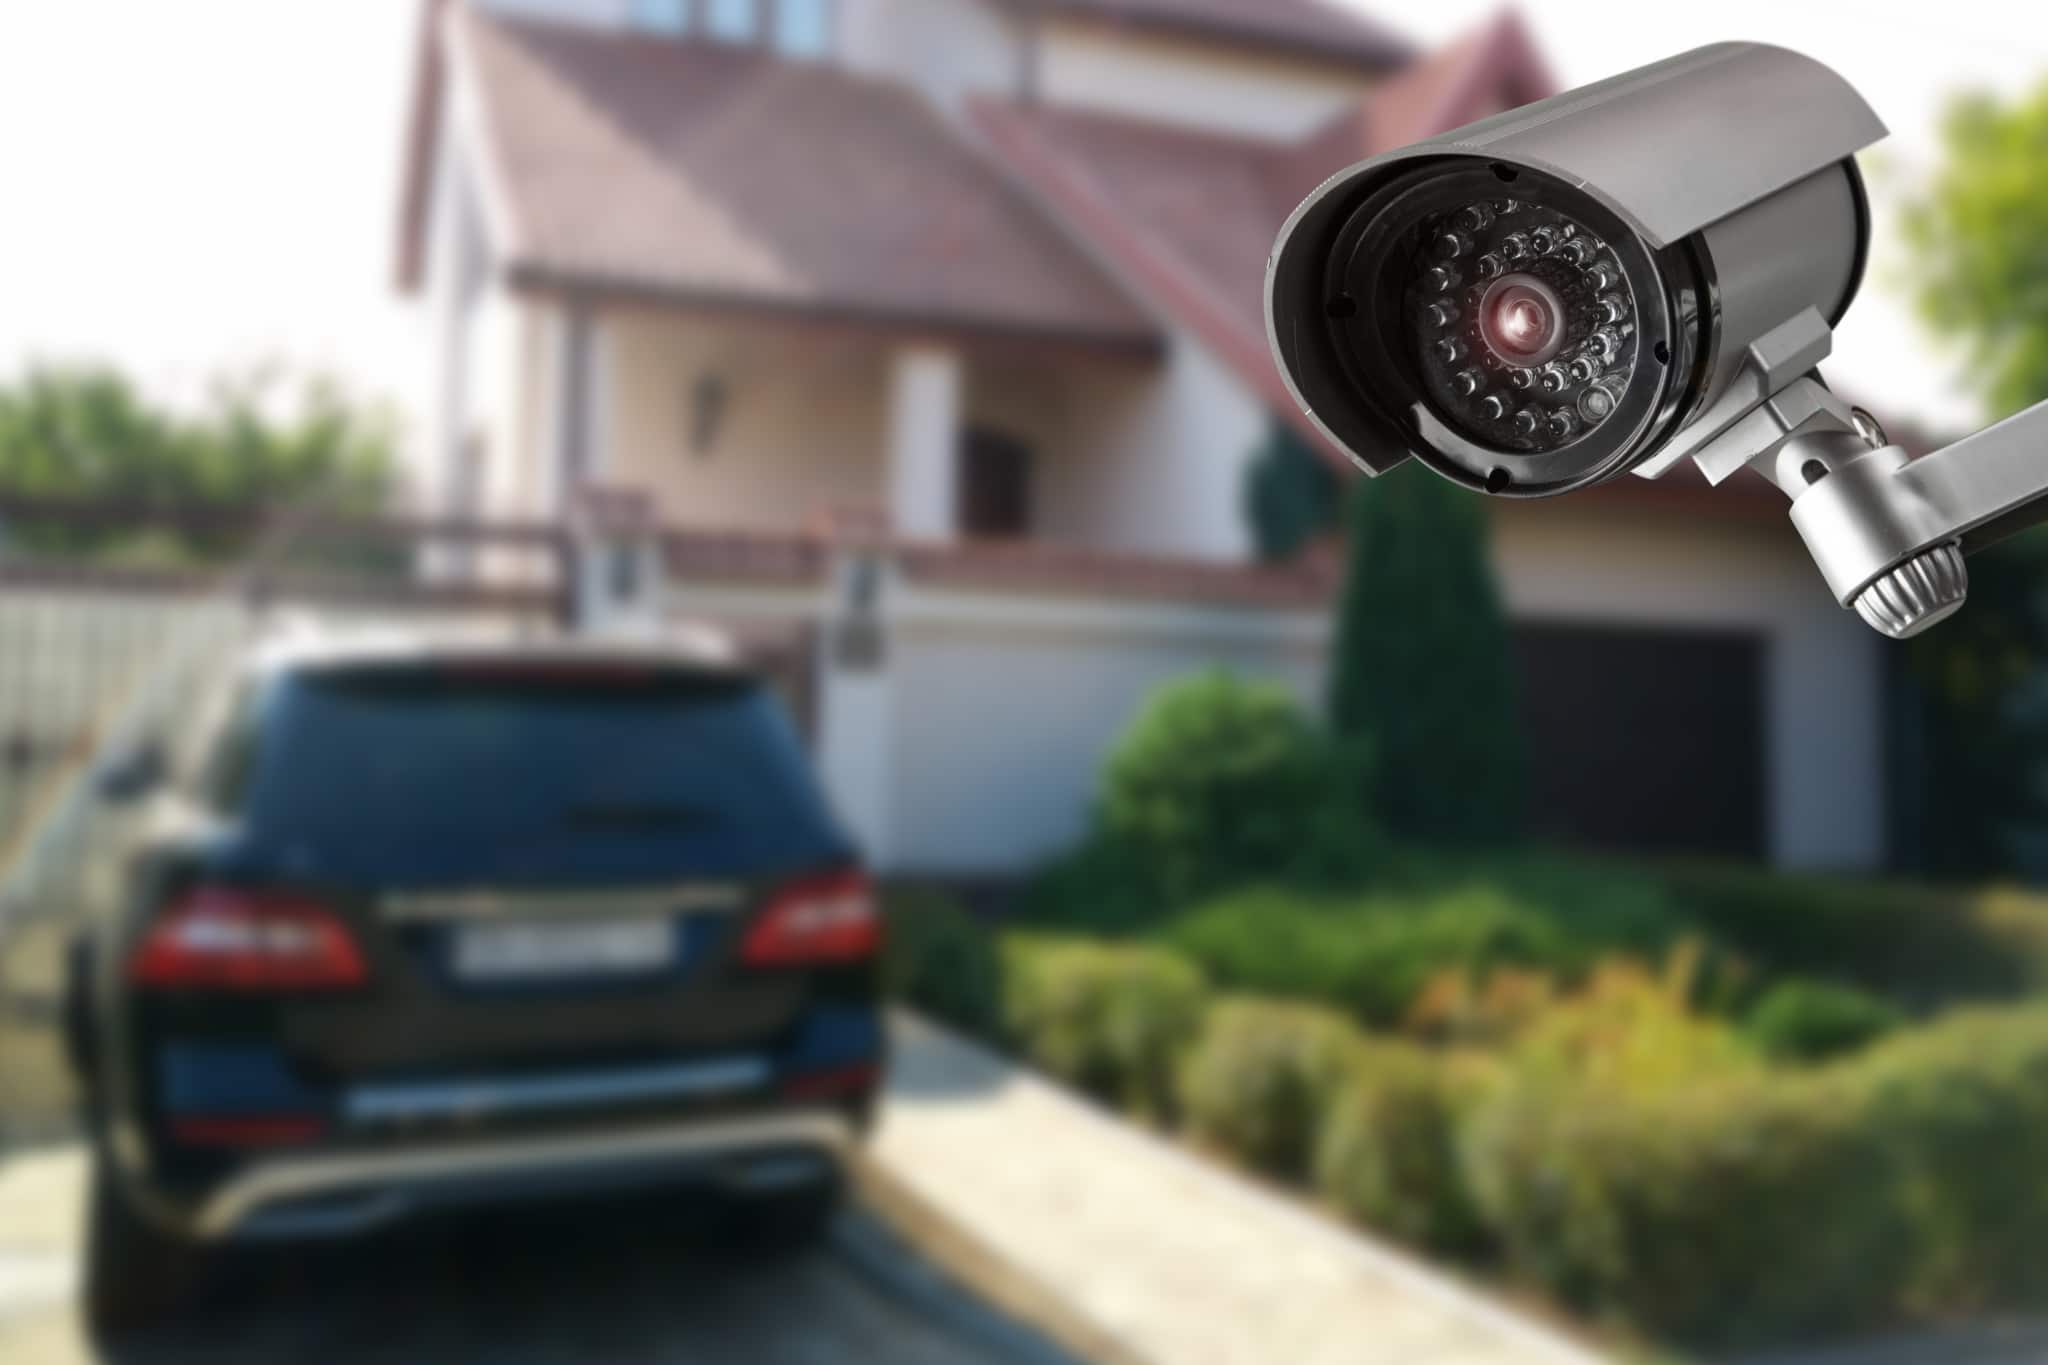 Things to Look for in Your Personal Security Monitoring System